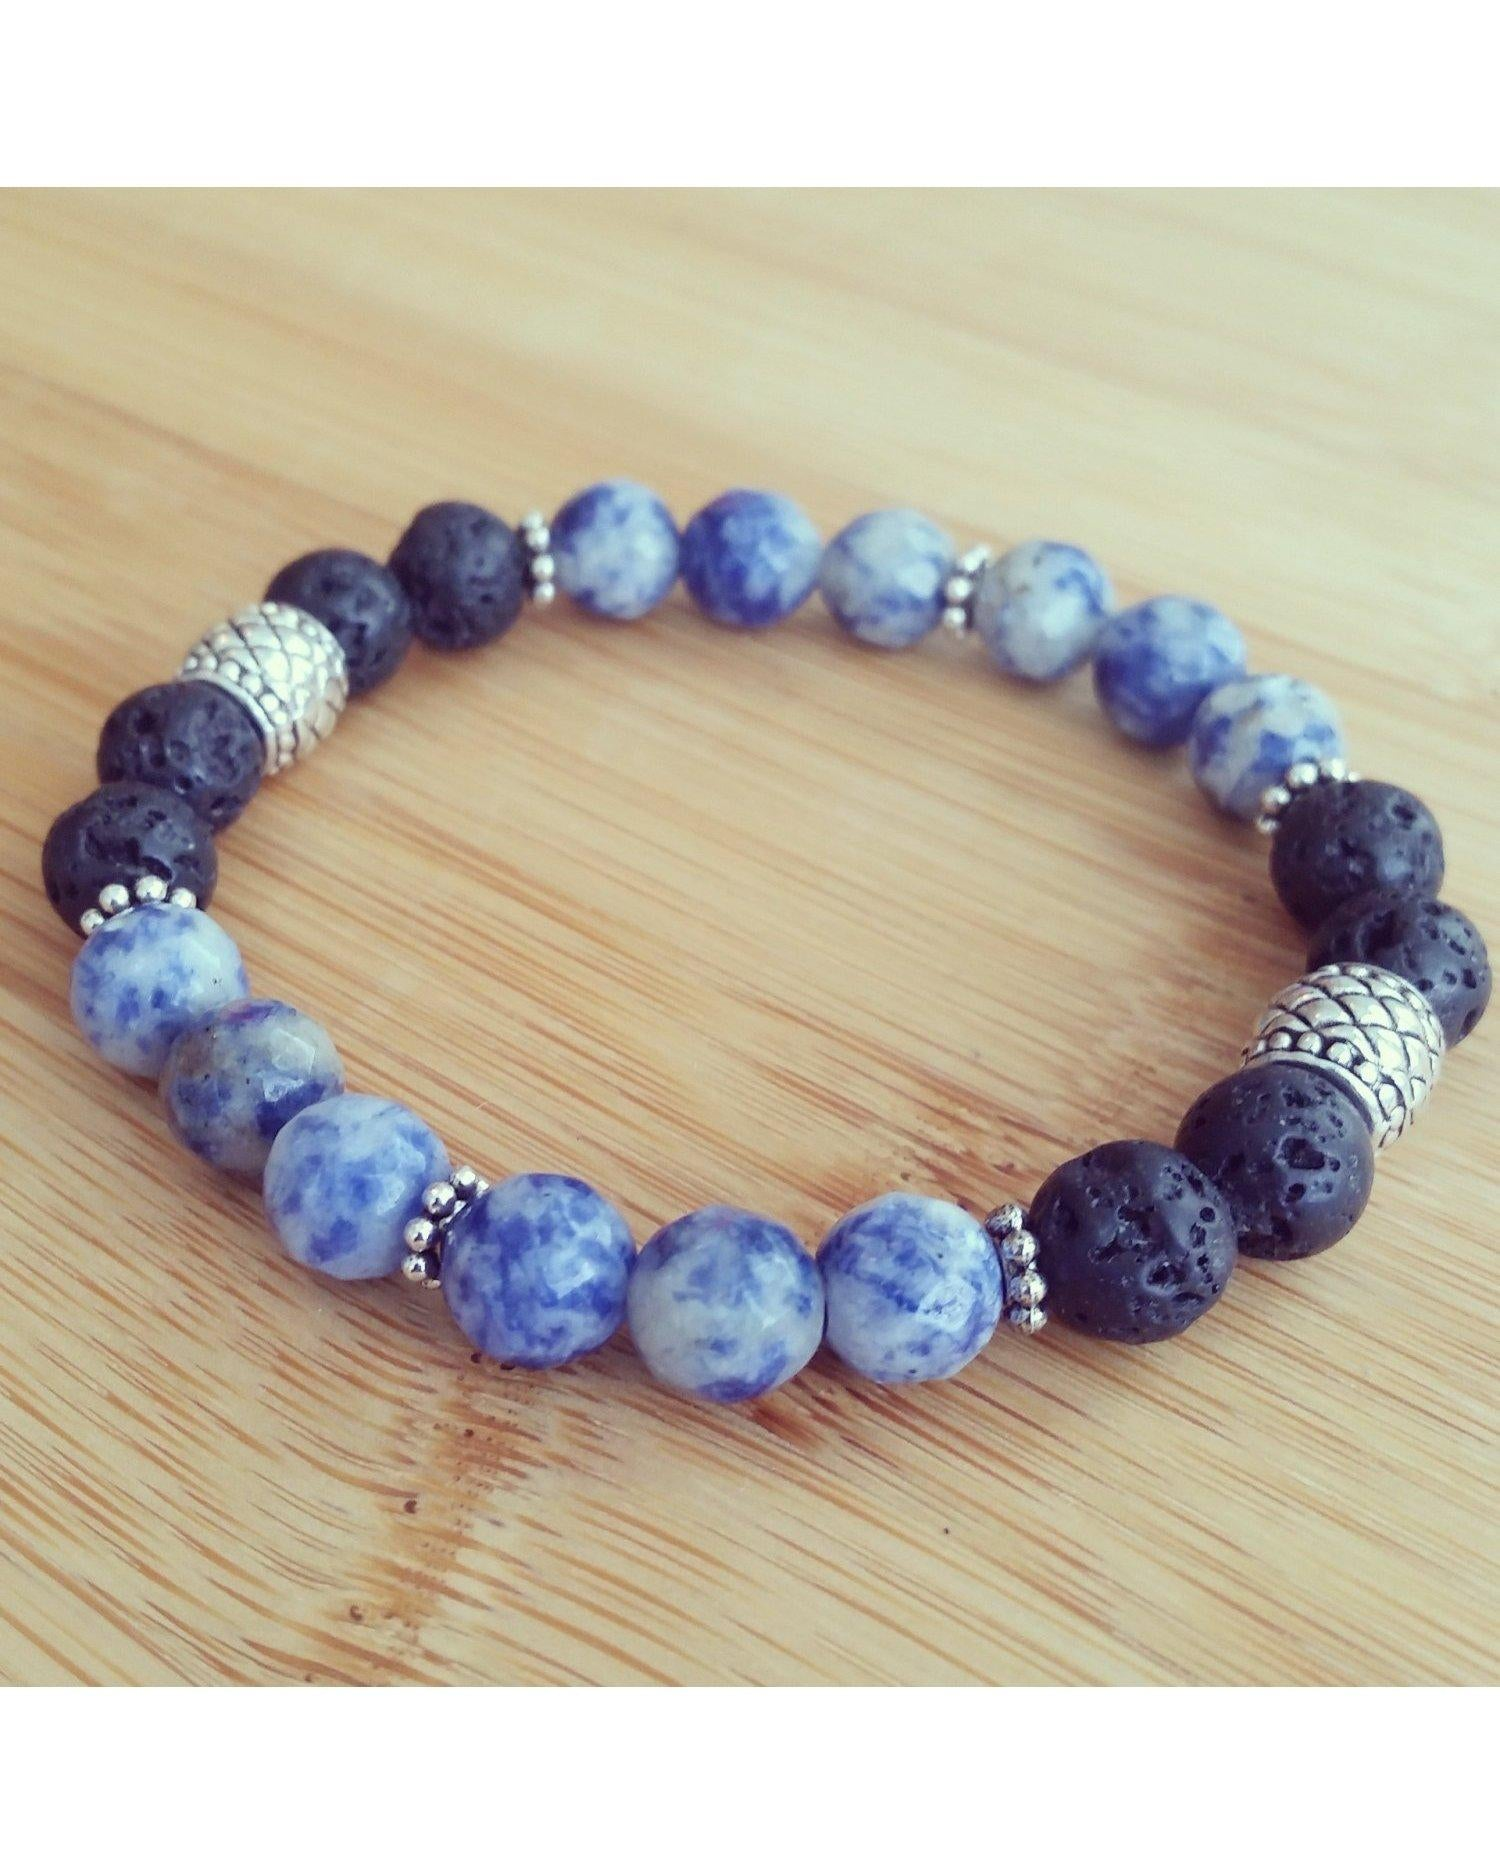 "Sodalite Faceted Blue/White Semi-Precious Gemstone and Lava Rock 8mm Bead 7"" Essential Oil Diffuser Stretch Bracelet P018 - Essentially Elegant"